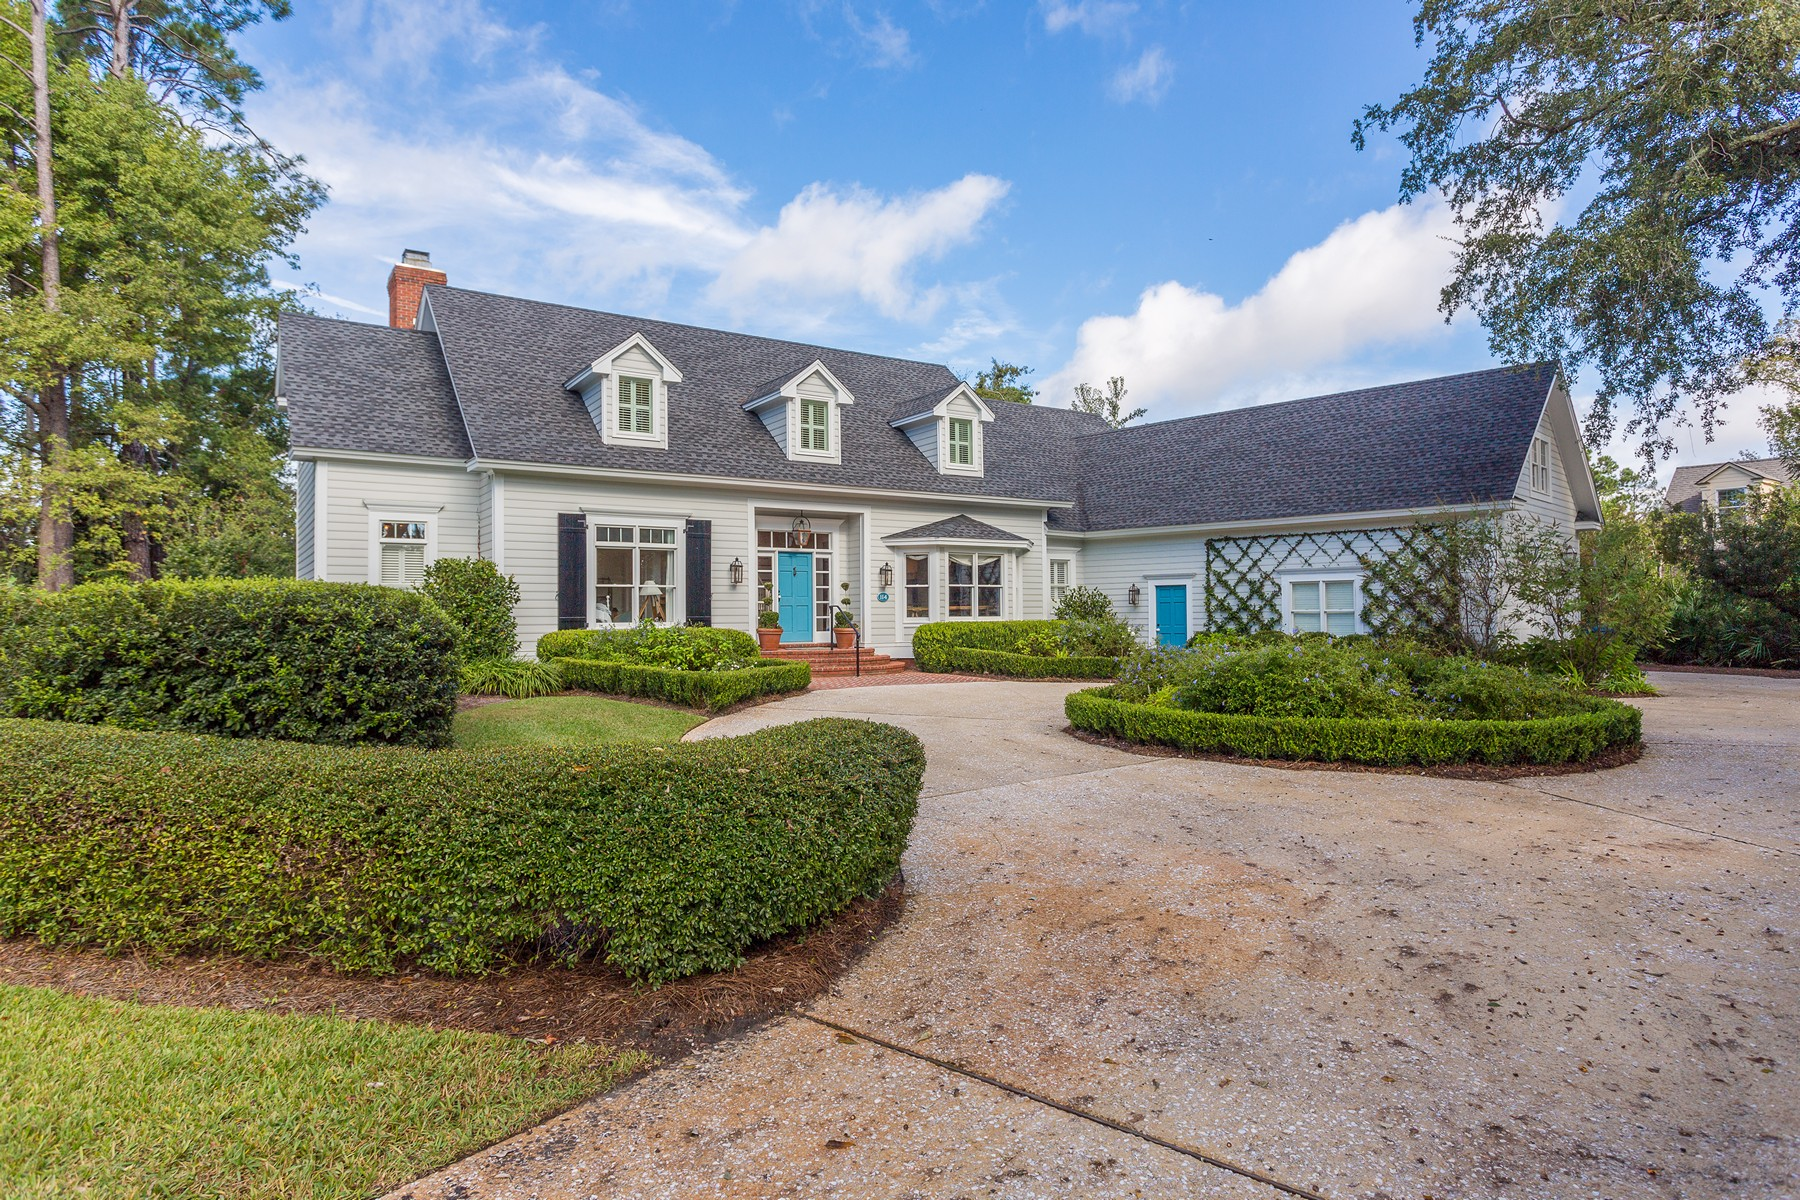 Single Family Homes for Active at 114 Augusta St. Simons Island, Georgia 31522 United States